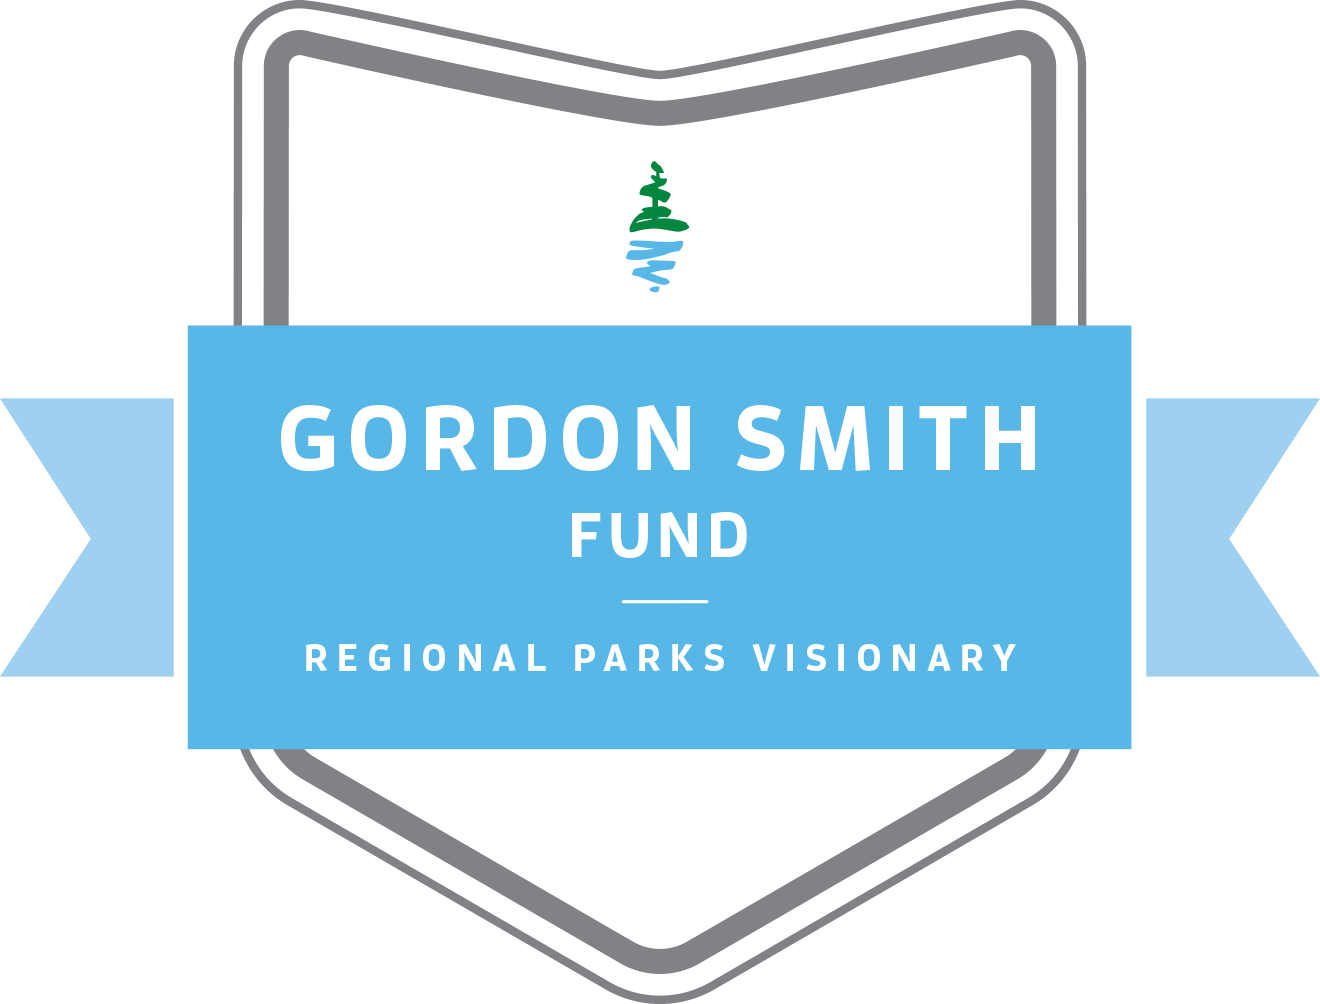 Pacific Parklands Foundation Visionaries Gordon Smith Fund